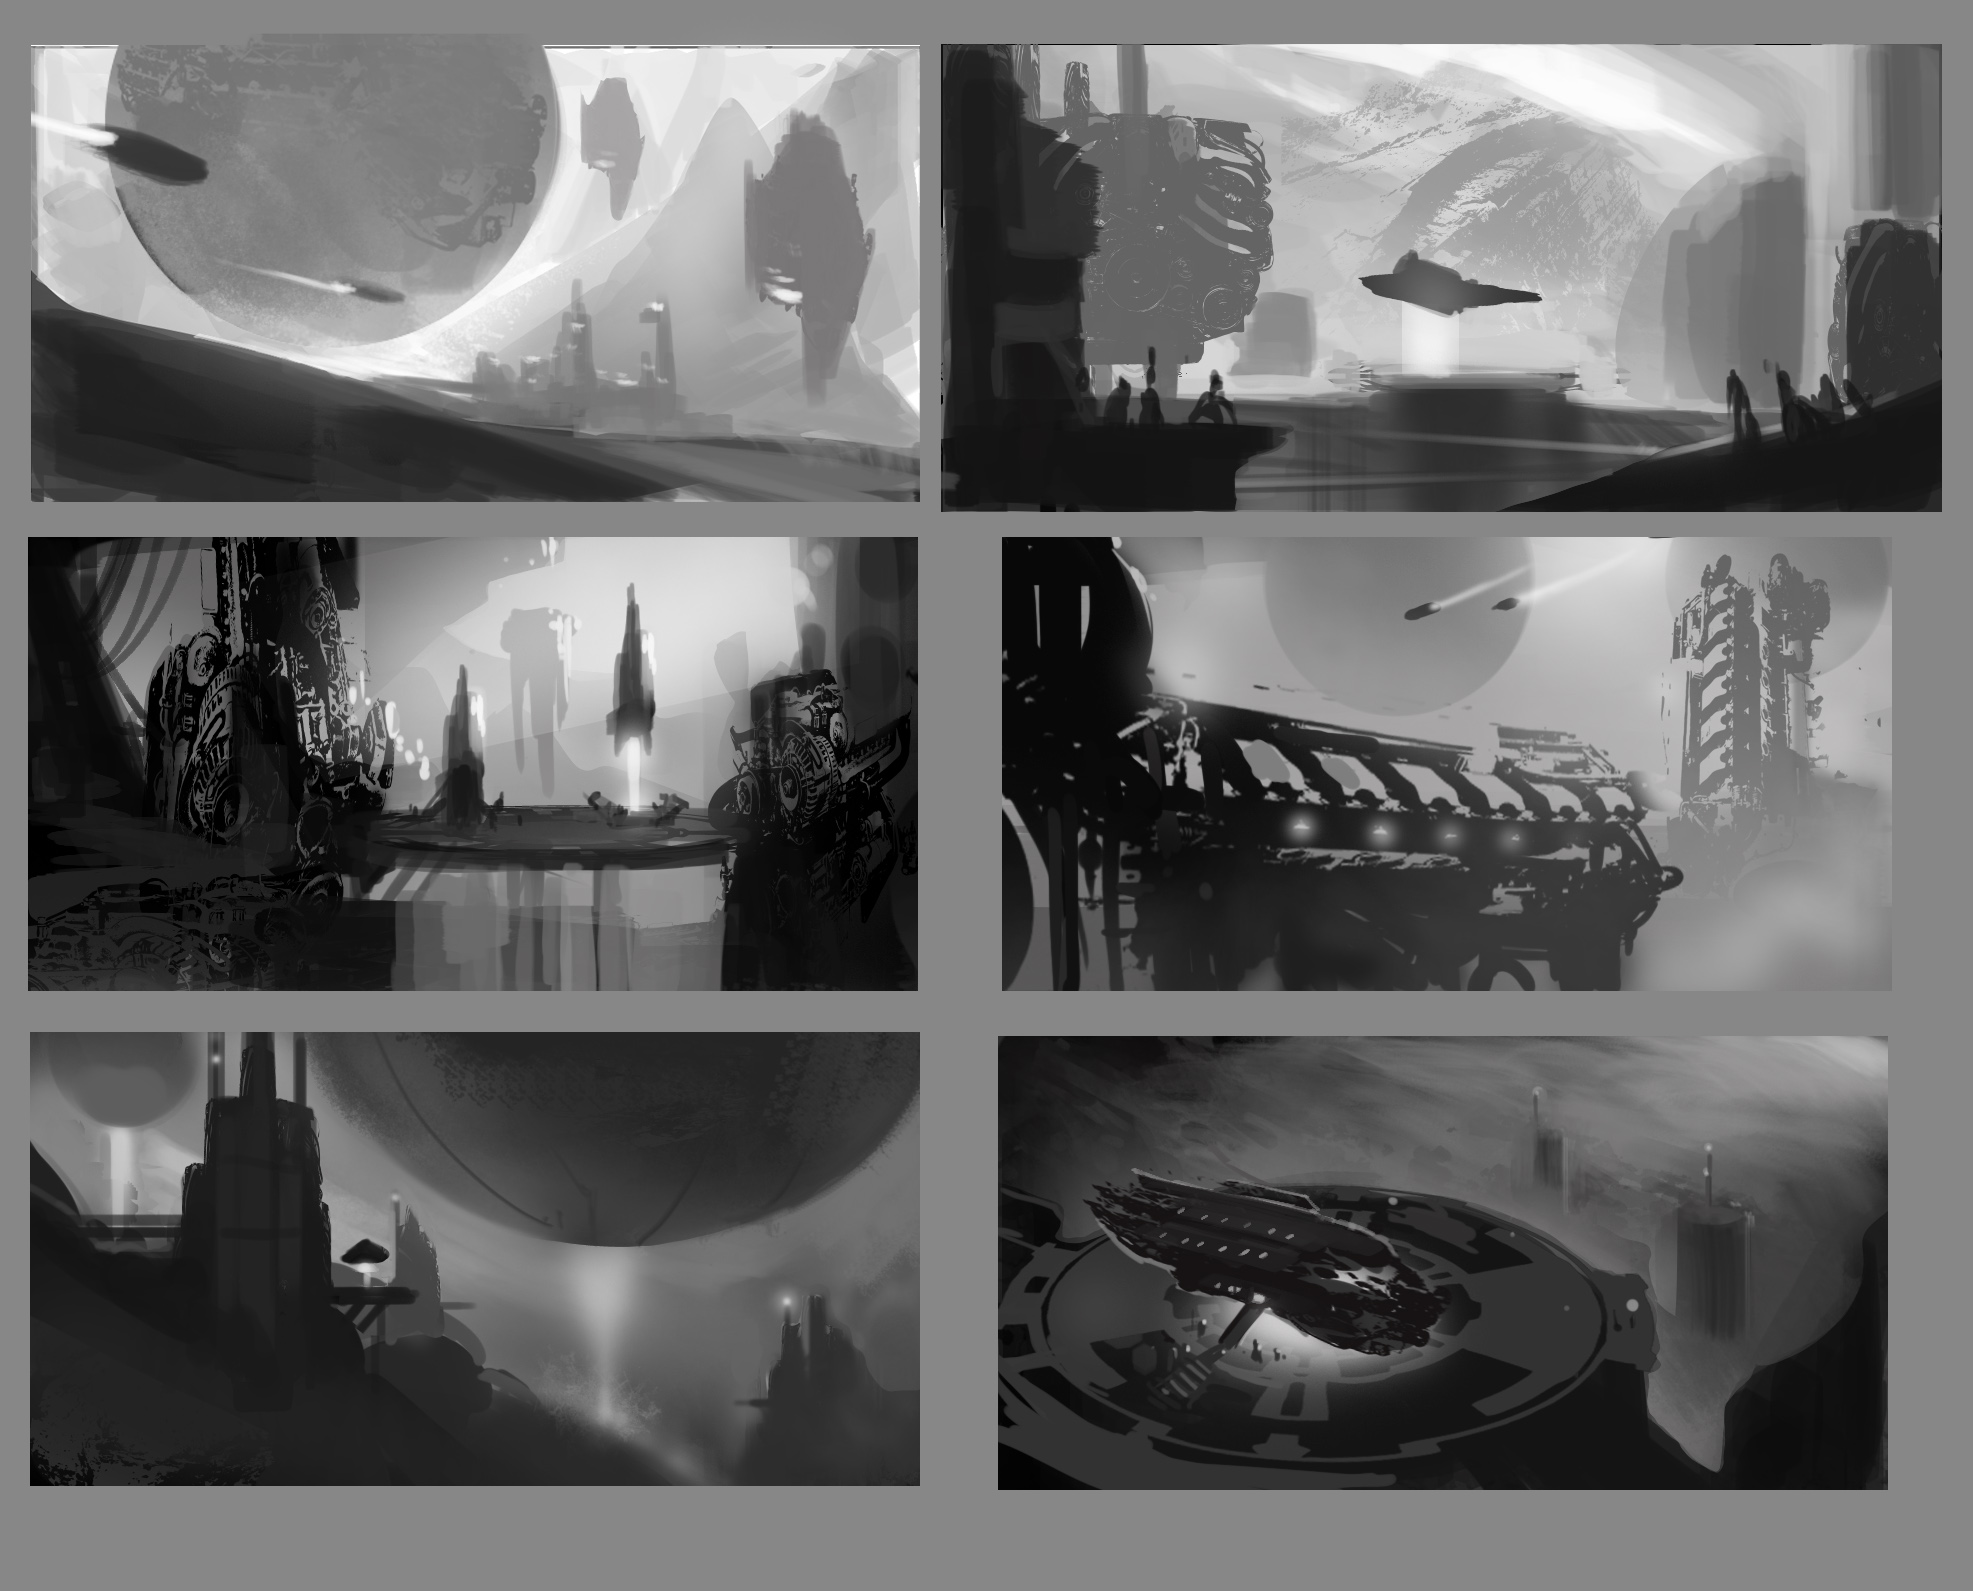 spacePortcomps1.jpg